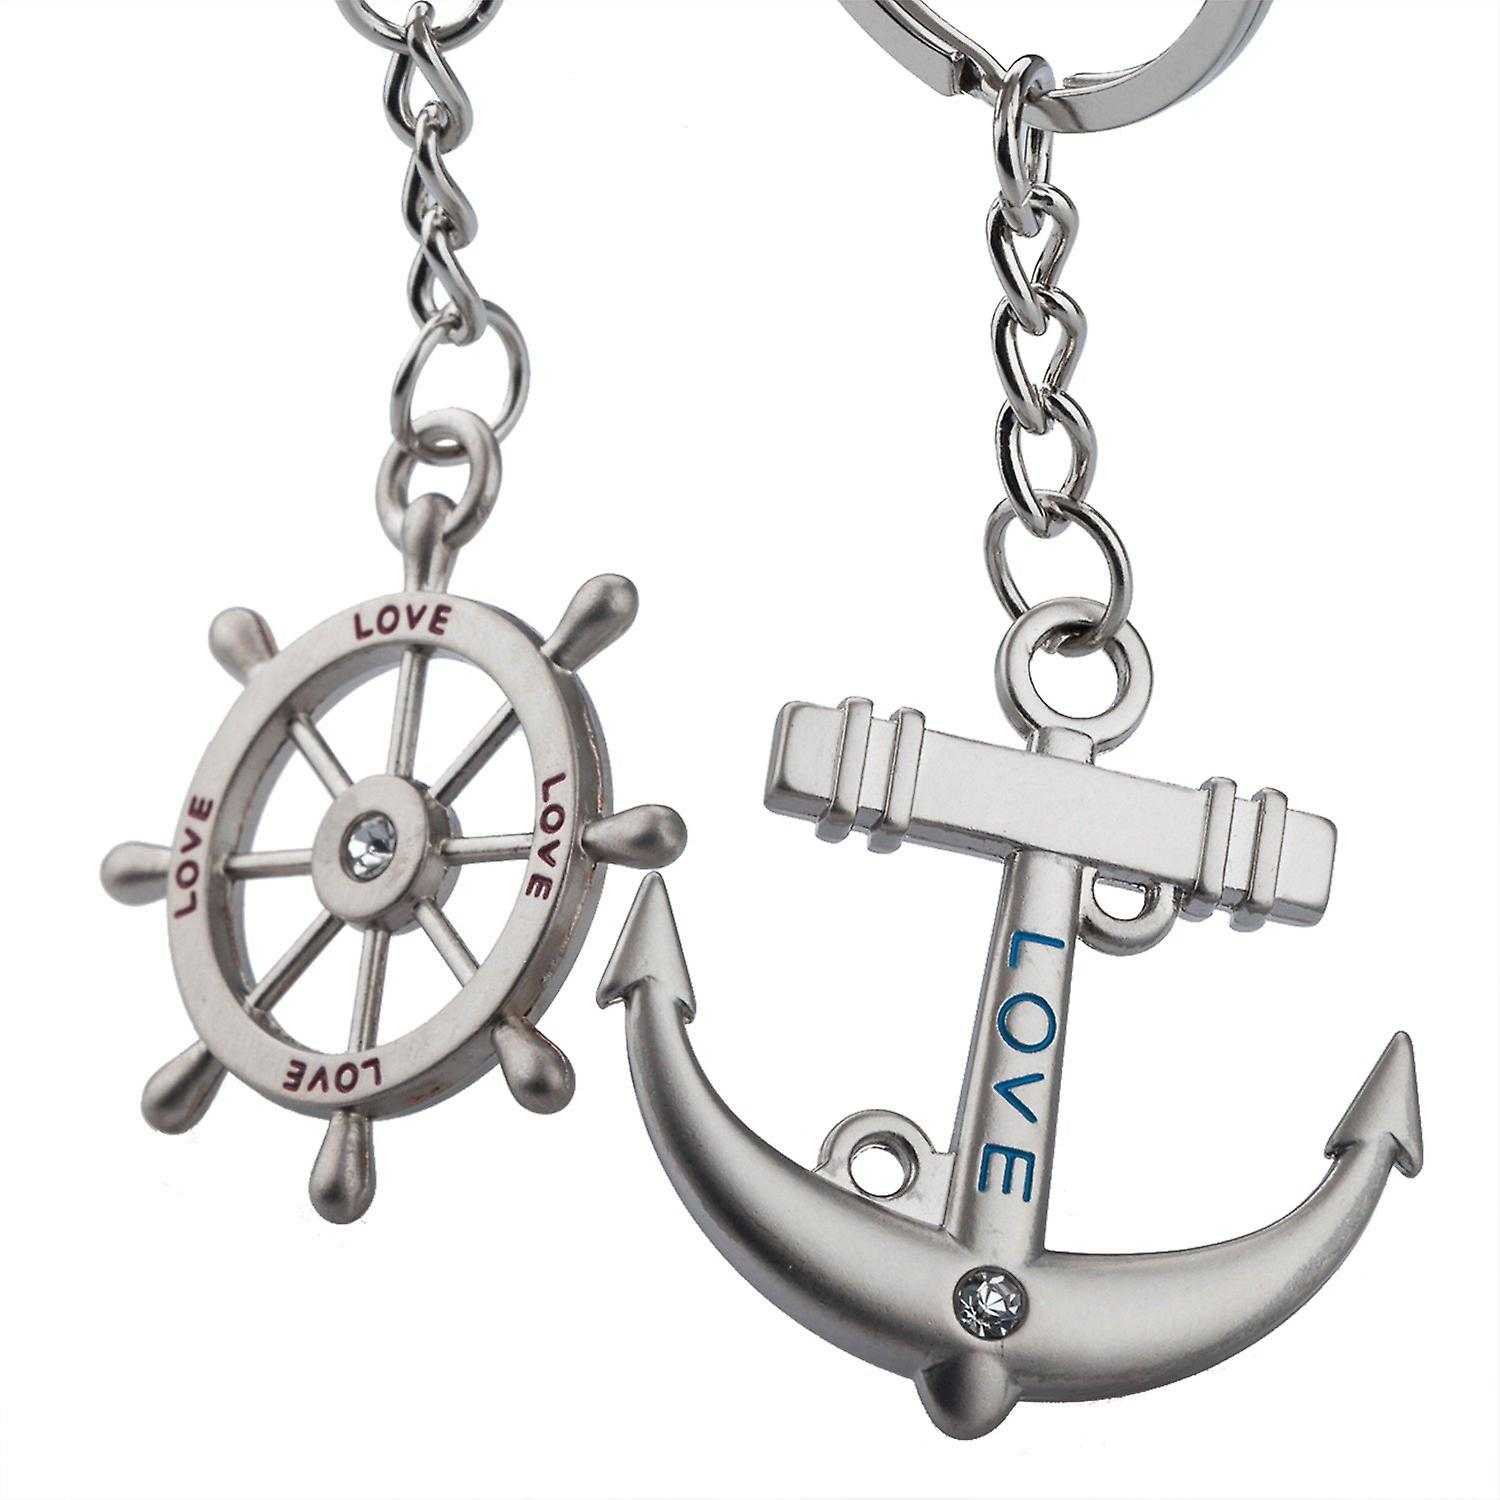 TRIXES Silver Cute Love Anchor and Rudder Keyrings Romantic Gift Marine Boat Chain